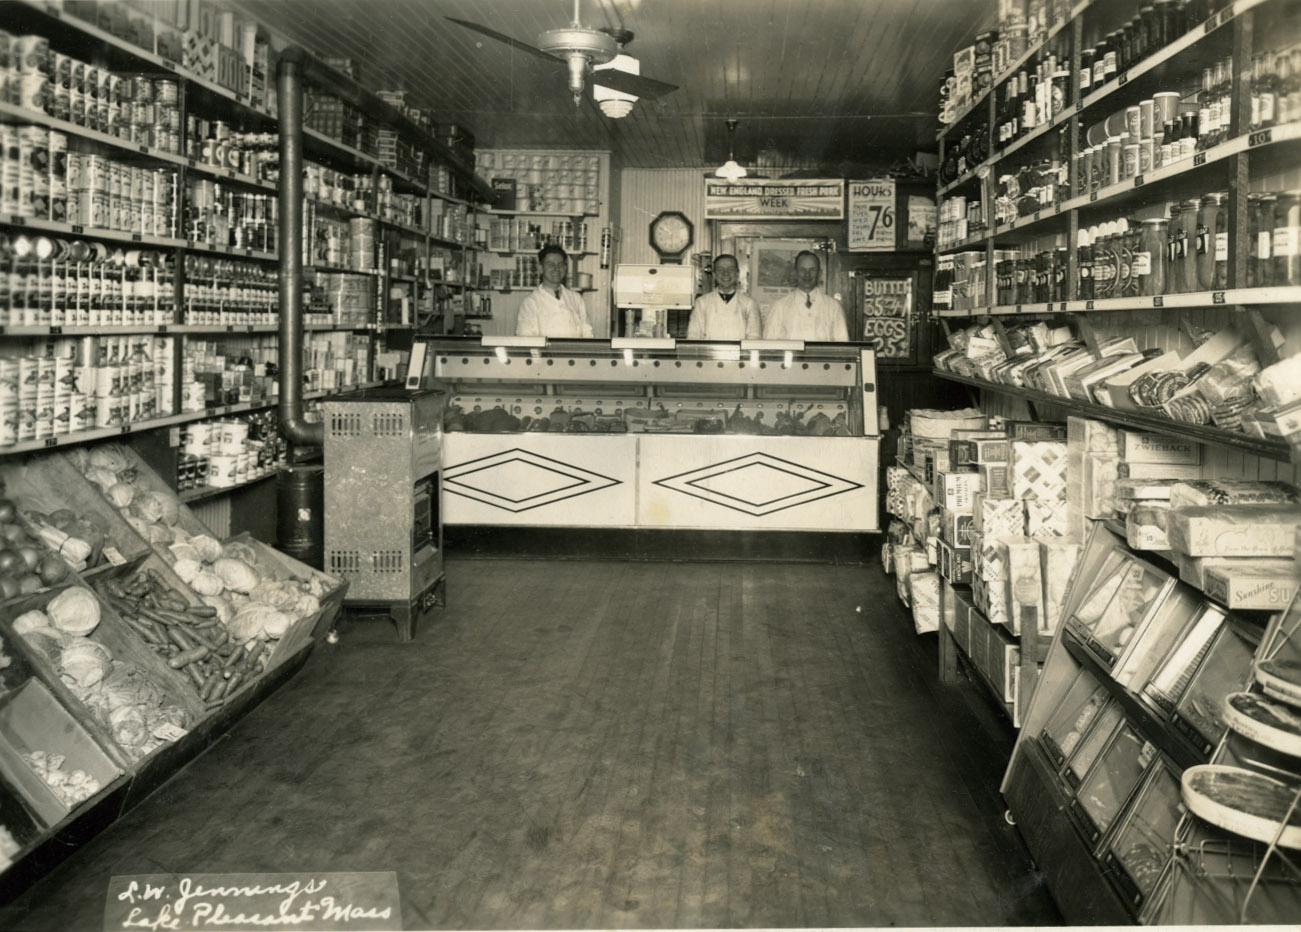 Image of Joseph and Martha Bajgier at Bell Market, Chicopee, 1937